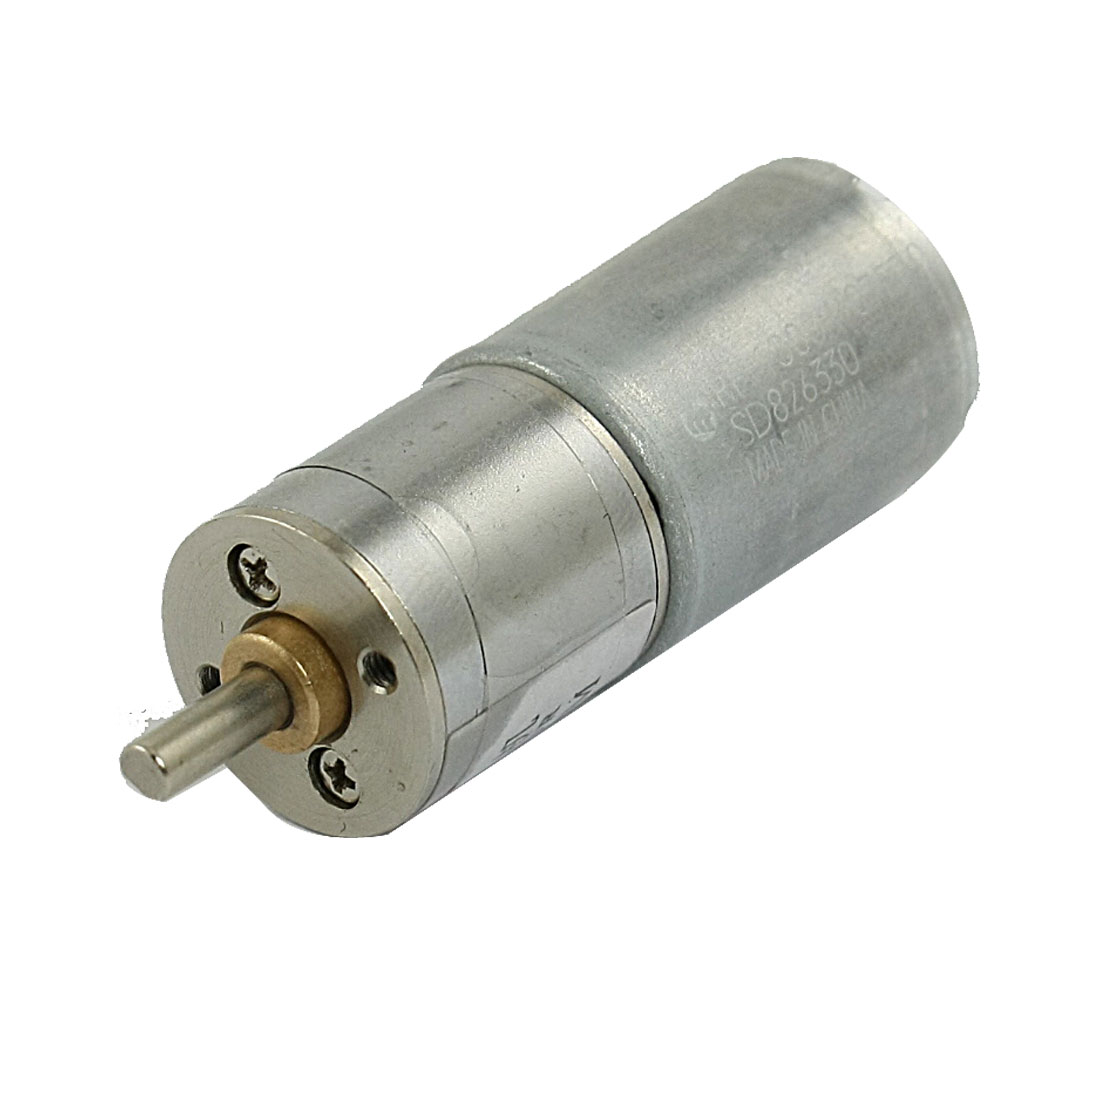 30RPM 12V 0.5A High Torque Electric DC Geared Motor Replacement